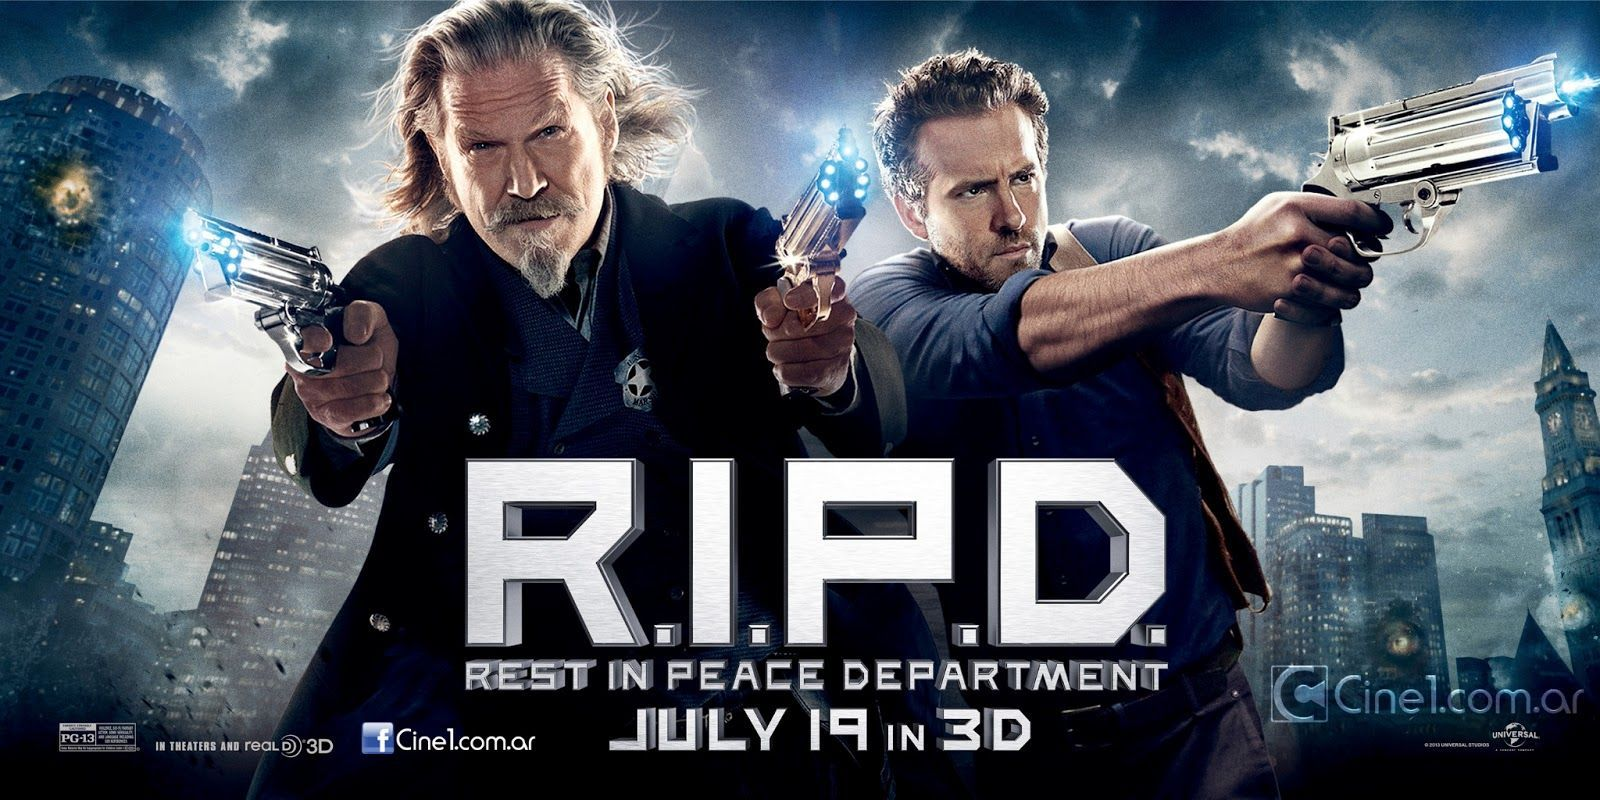 RIPD Banners. R.I.P.D. Stars Jeff Bridges, Ryan Reynolds ...